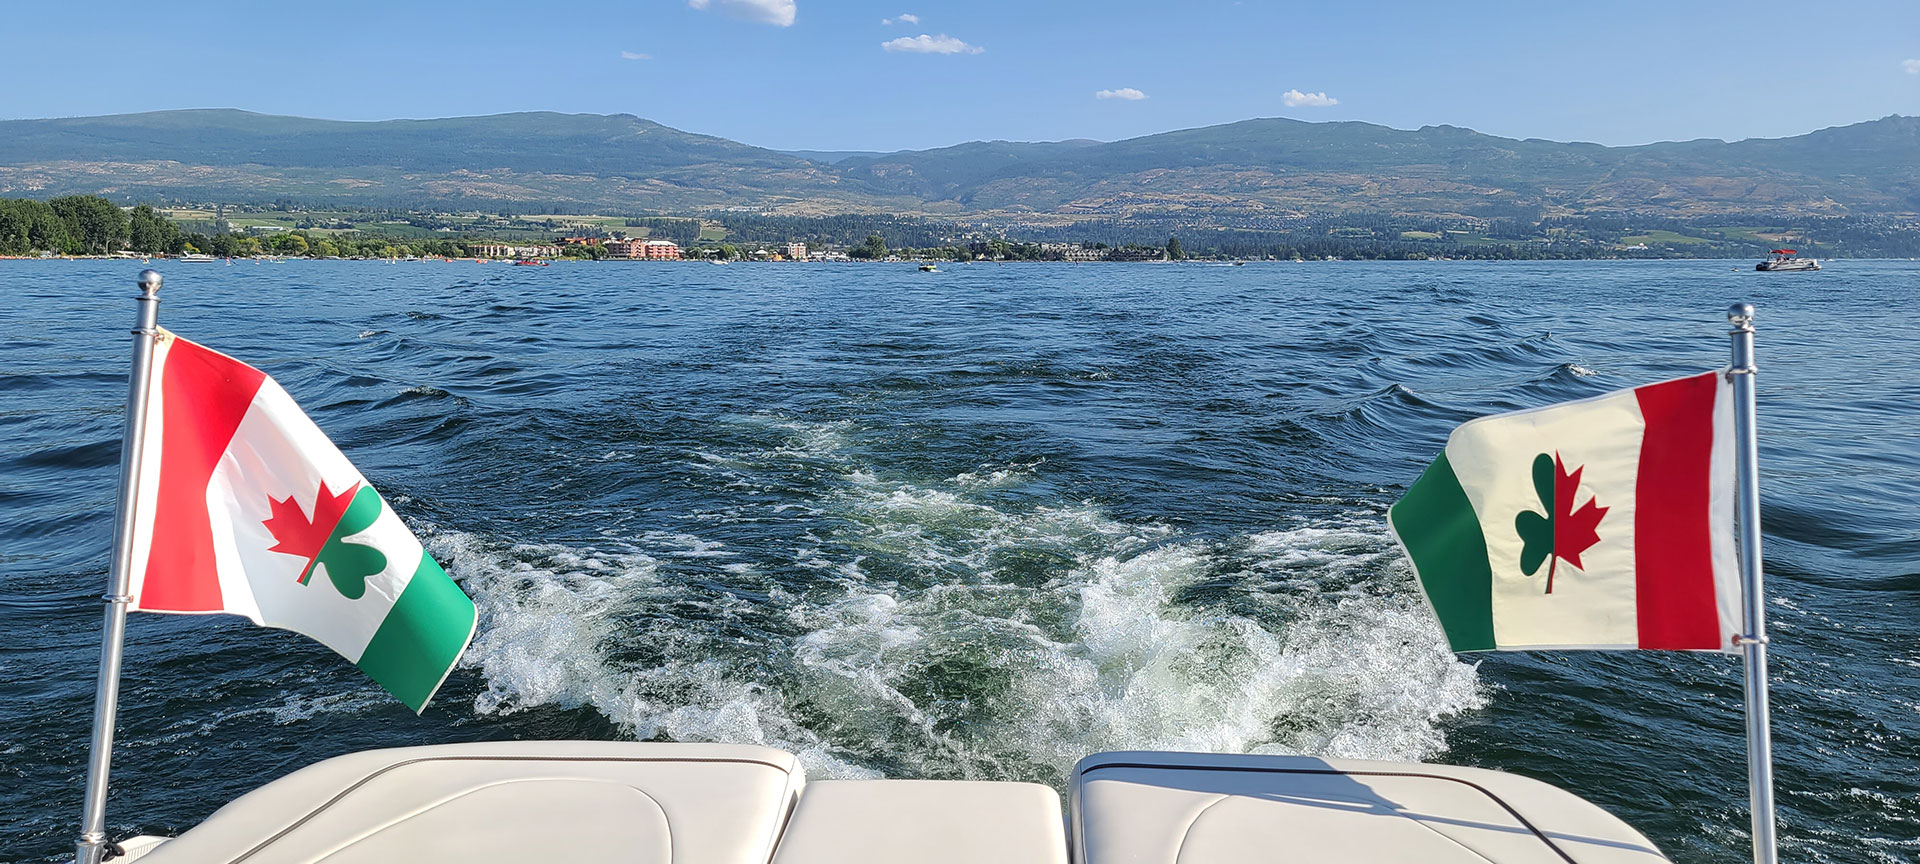 www.boattourskelowna.com, Kelowna Water Taxi Cruises, offering enjoyable boat tours on Lake Okanagan.